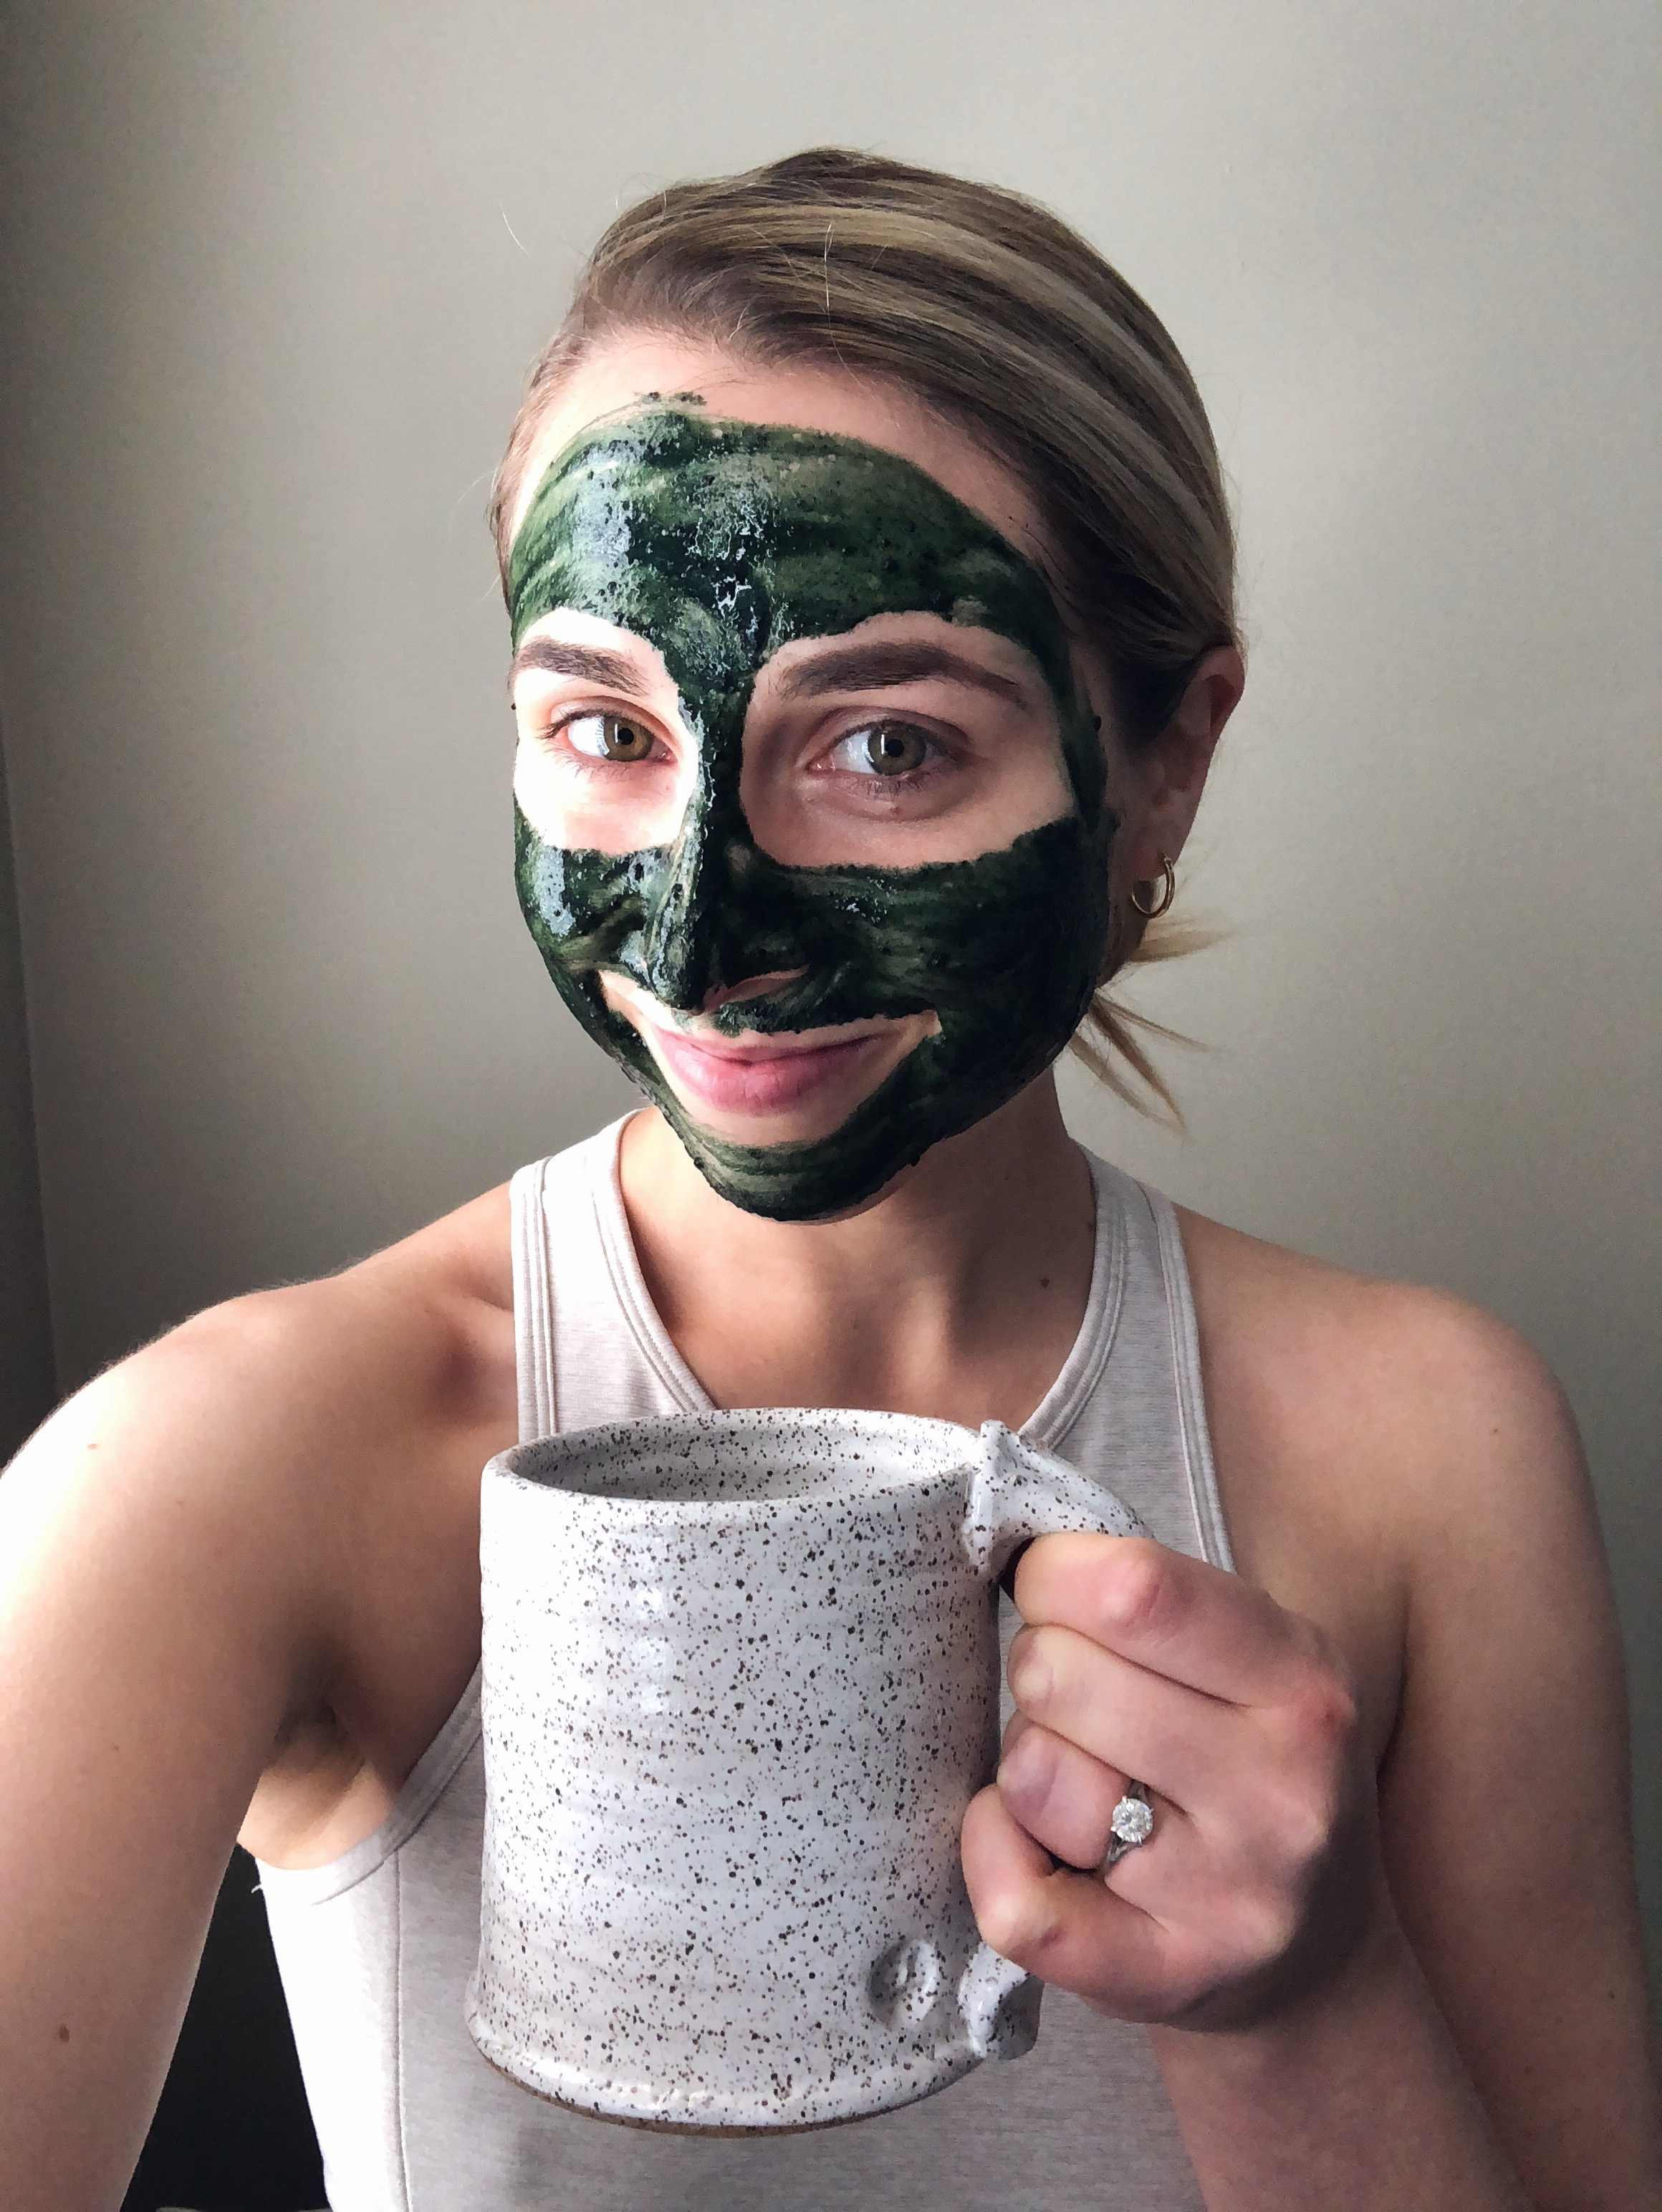 Girl with face mask on holding a mug